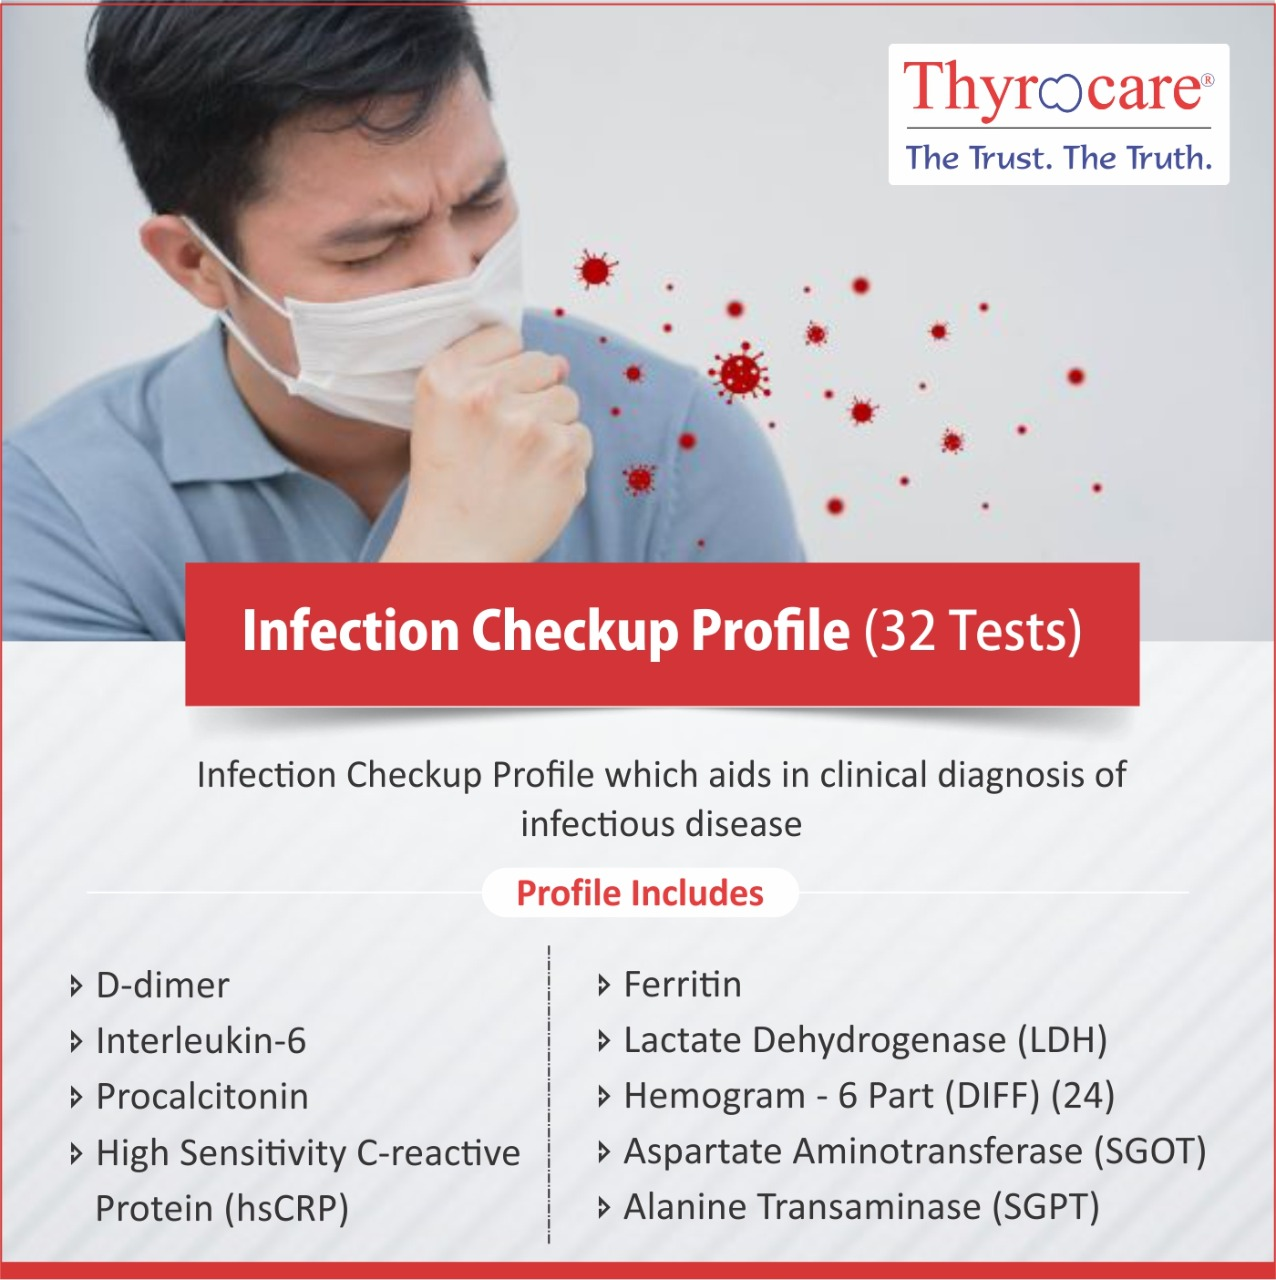 Thyrocare INFECTION CHECKUP PROFILE @Rs.2290 Only | 32 Tests | Thyrocare Packages